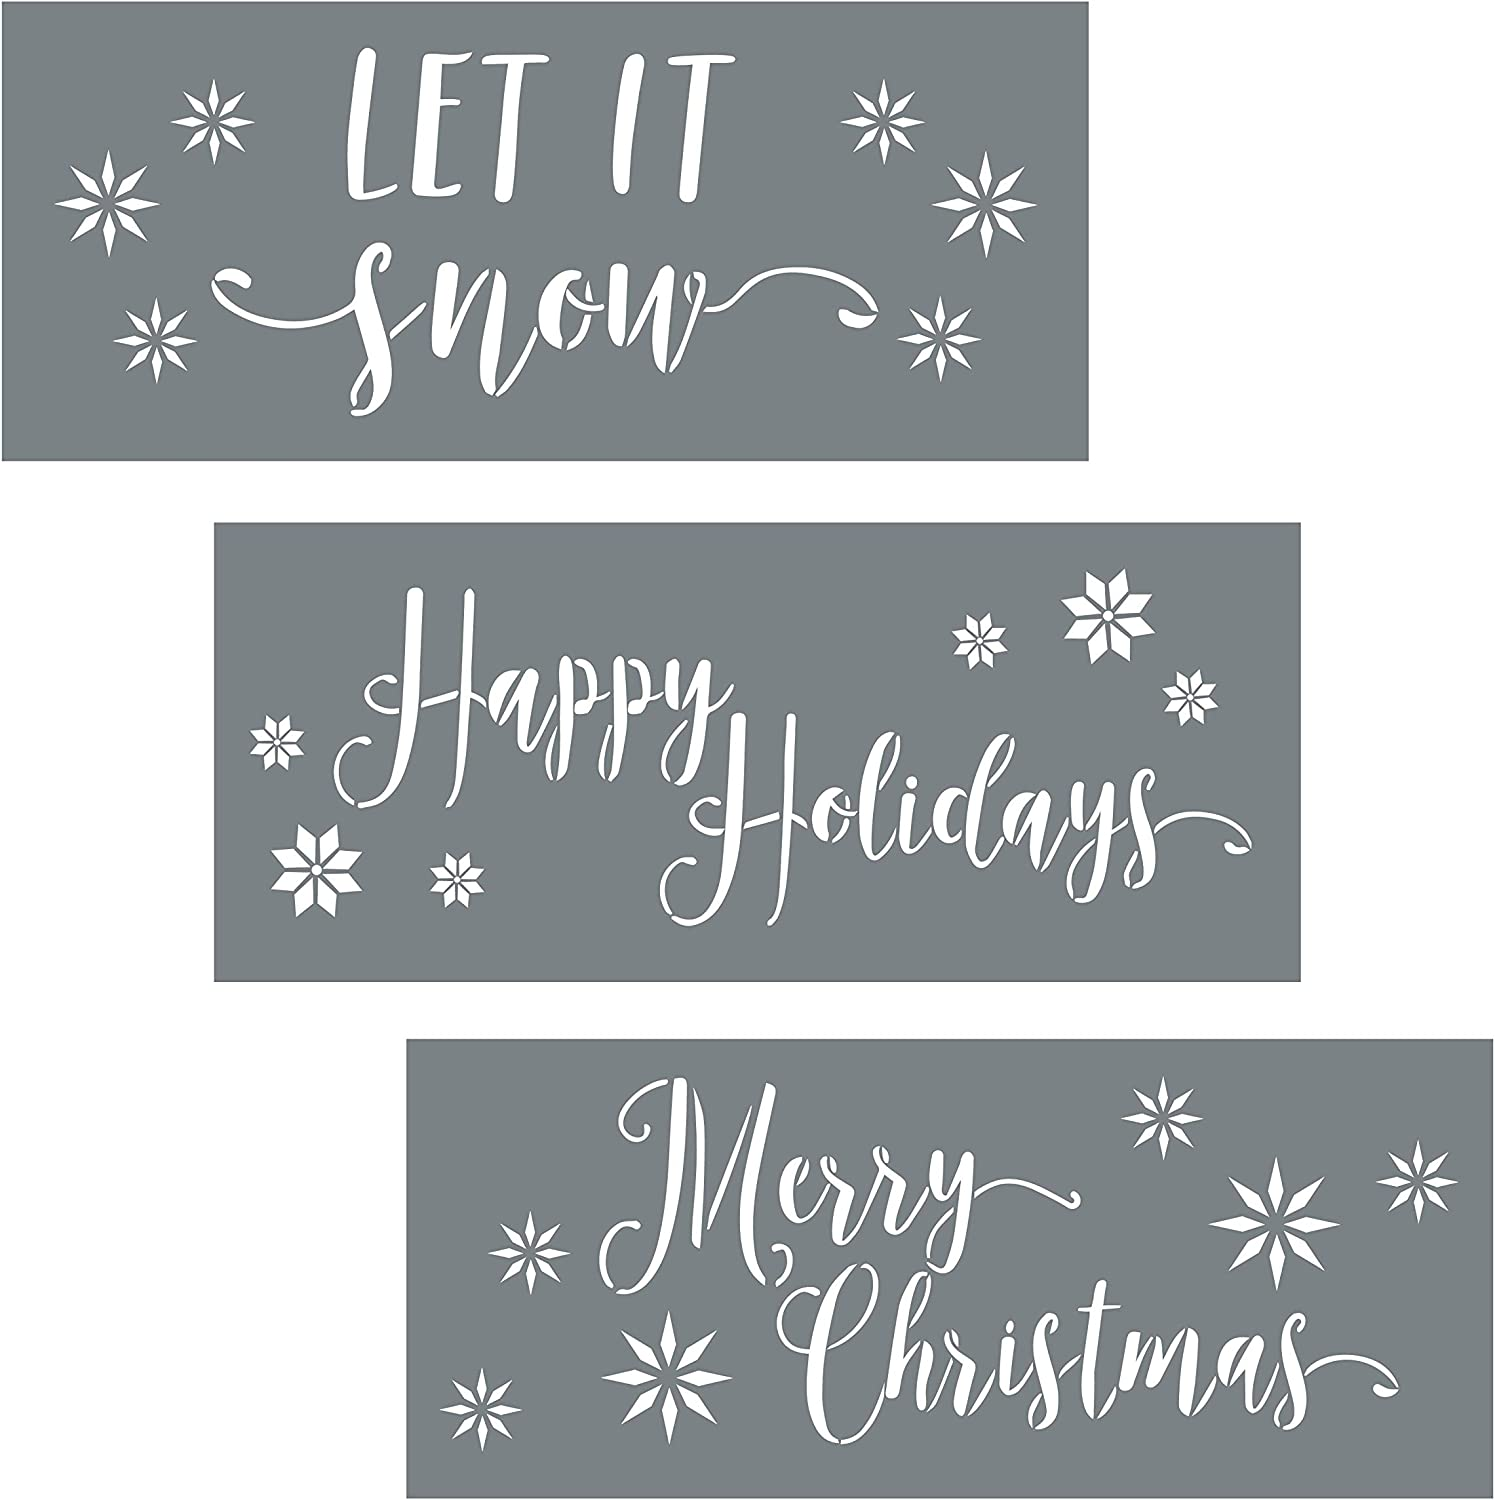 Christmas Stencils - Pack of 3 Holiday Stencils for Creating Festive Christmas Decor - Merry Christmas Stencil, Let It Snow and Happy Holiday Stencil Set - Christmas Stencils for Painting on Wood